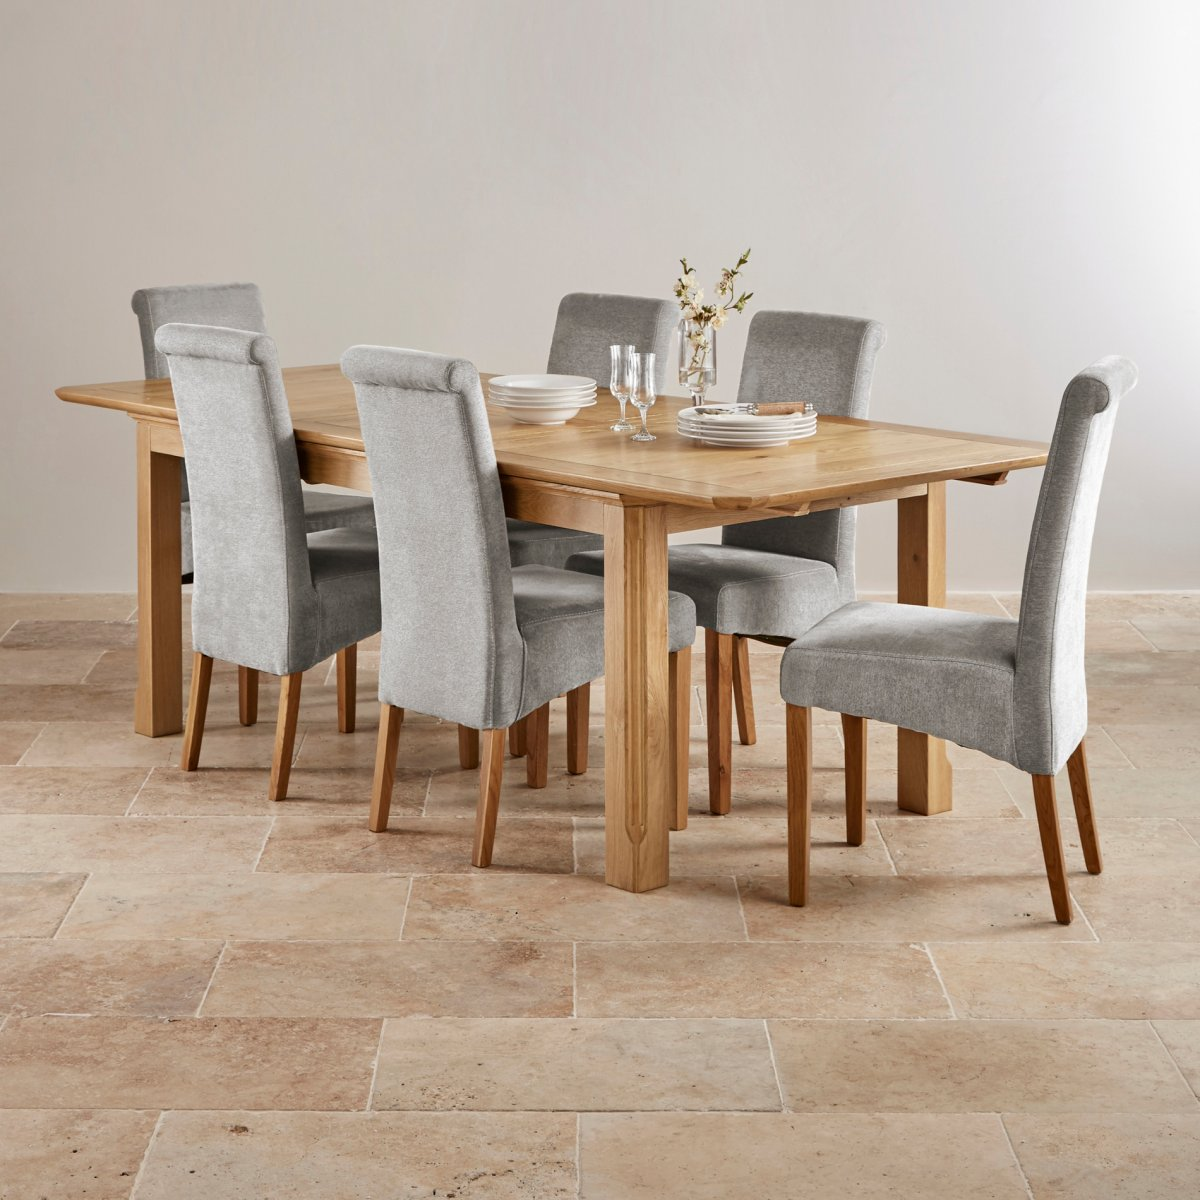 Edinburgh Extending Dining Set in Oak Dining Table 6 Chairs : edinburgh natural solid oak dining set 6ft extending table with 6 scroll back grey fabric chairs 57ac9ea0265d04ba8683c0c9a448560e6a8deef5a1a61 from www.oakfurnitureland.co.uk size 1200 x 1200 jpeg 186kB